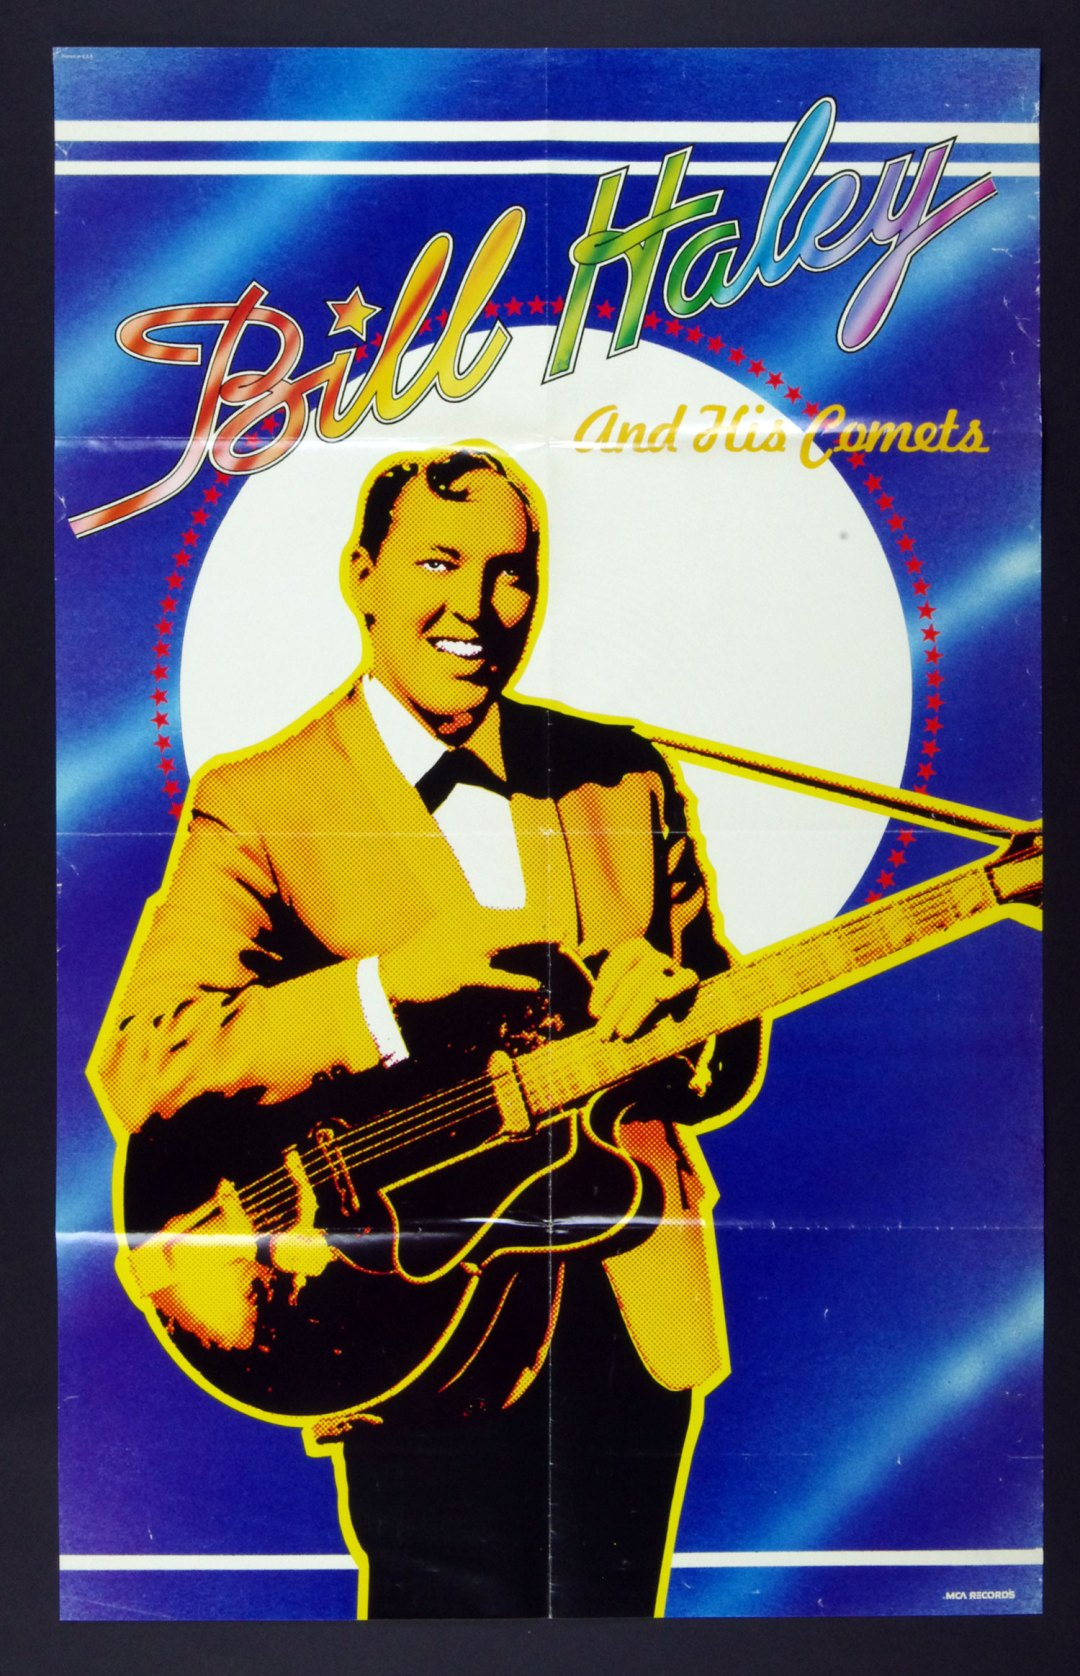 Bill Haley And His Comets Poster Bailando El Rock 1975 Album Promo 22 x 35